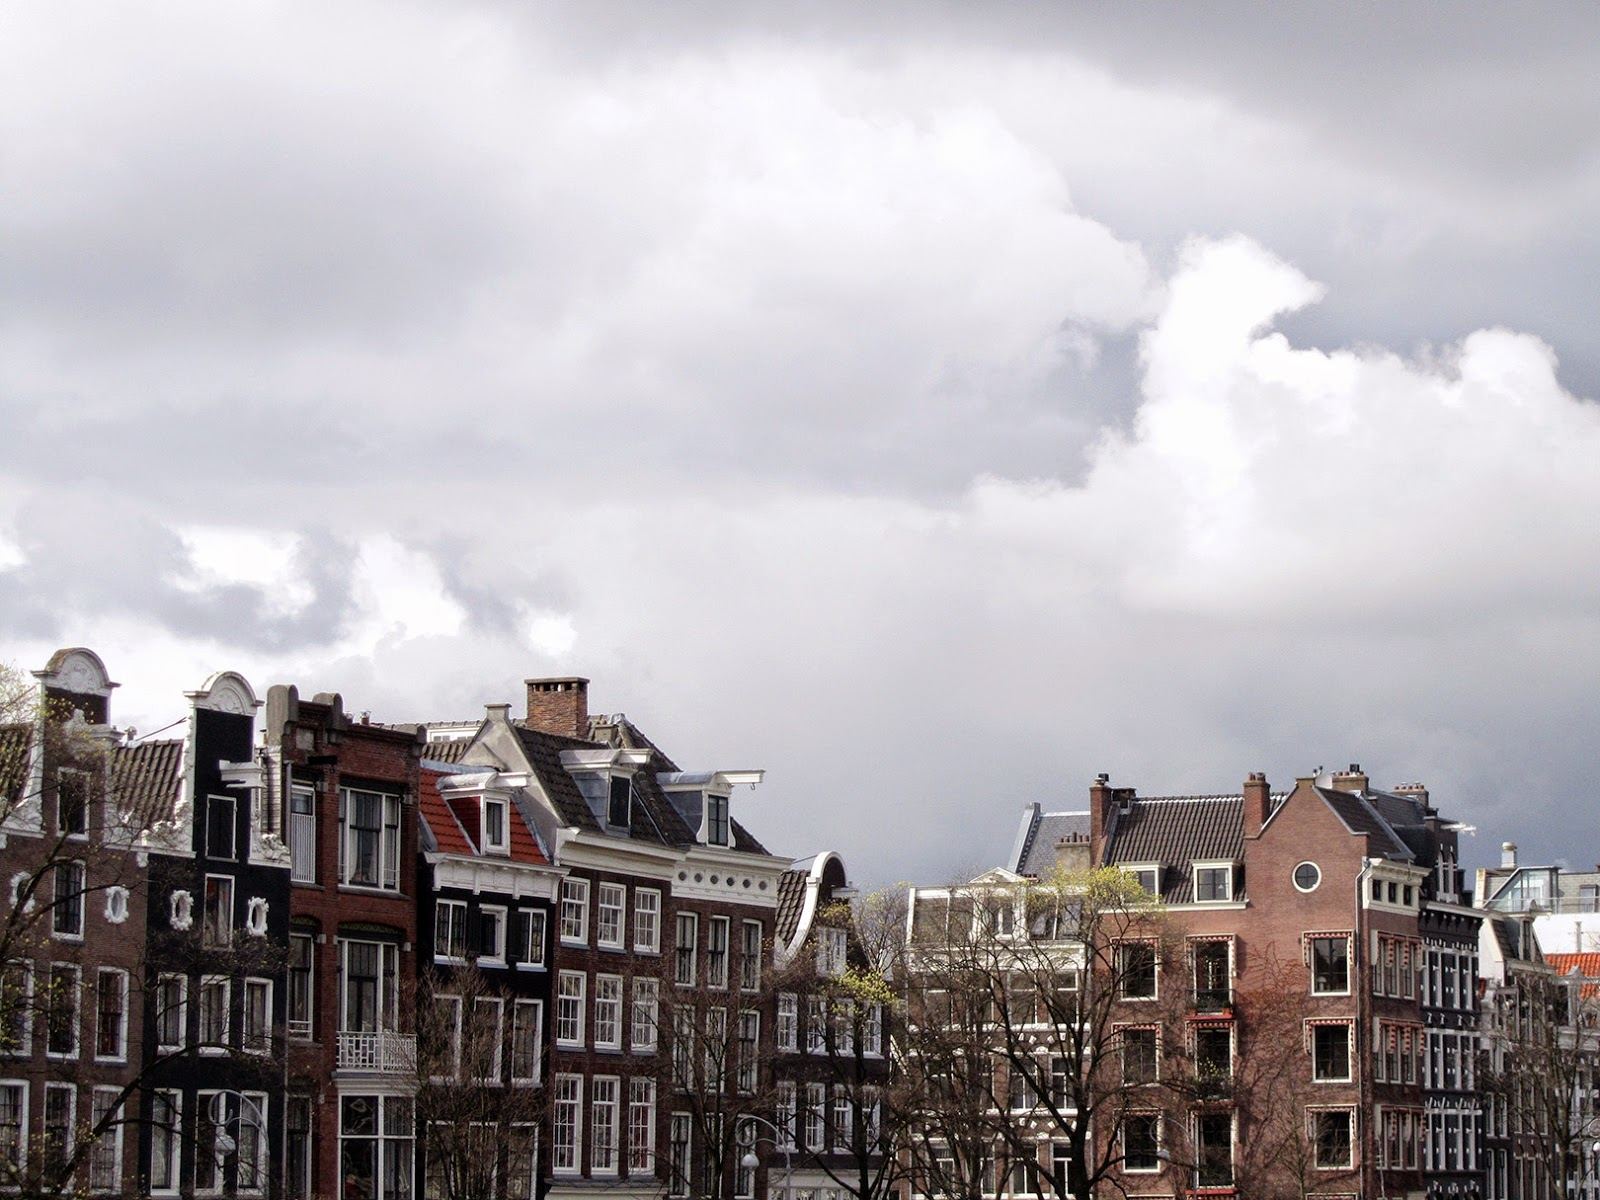 view on the canal houses, Amsterdam